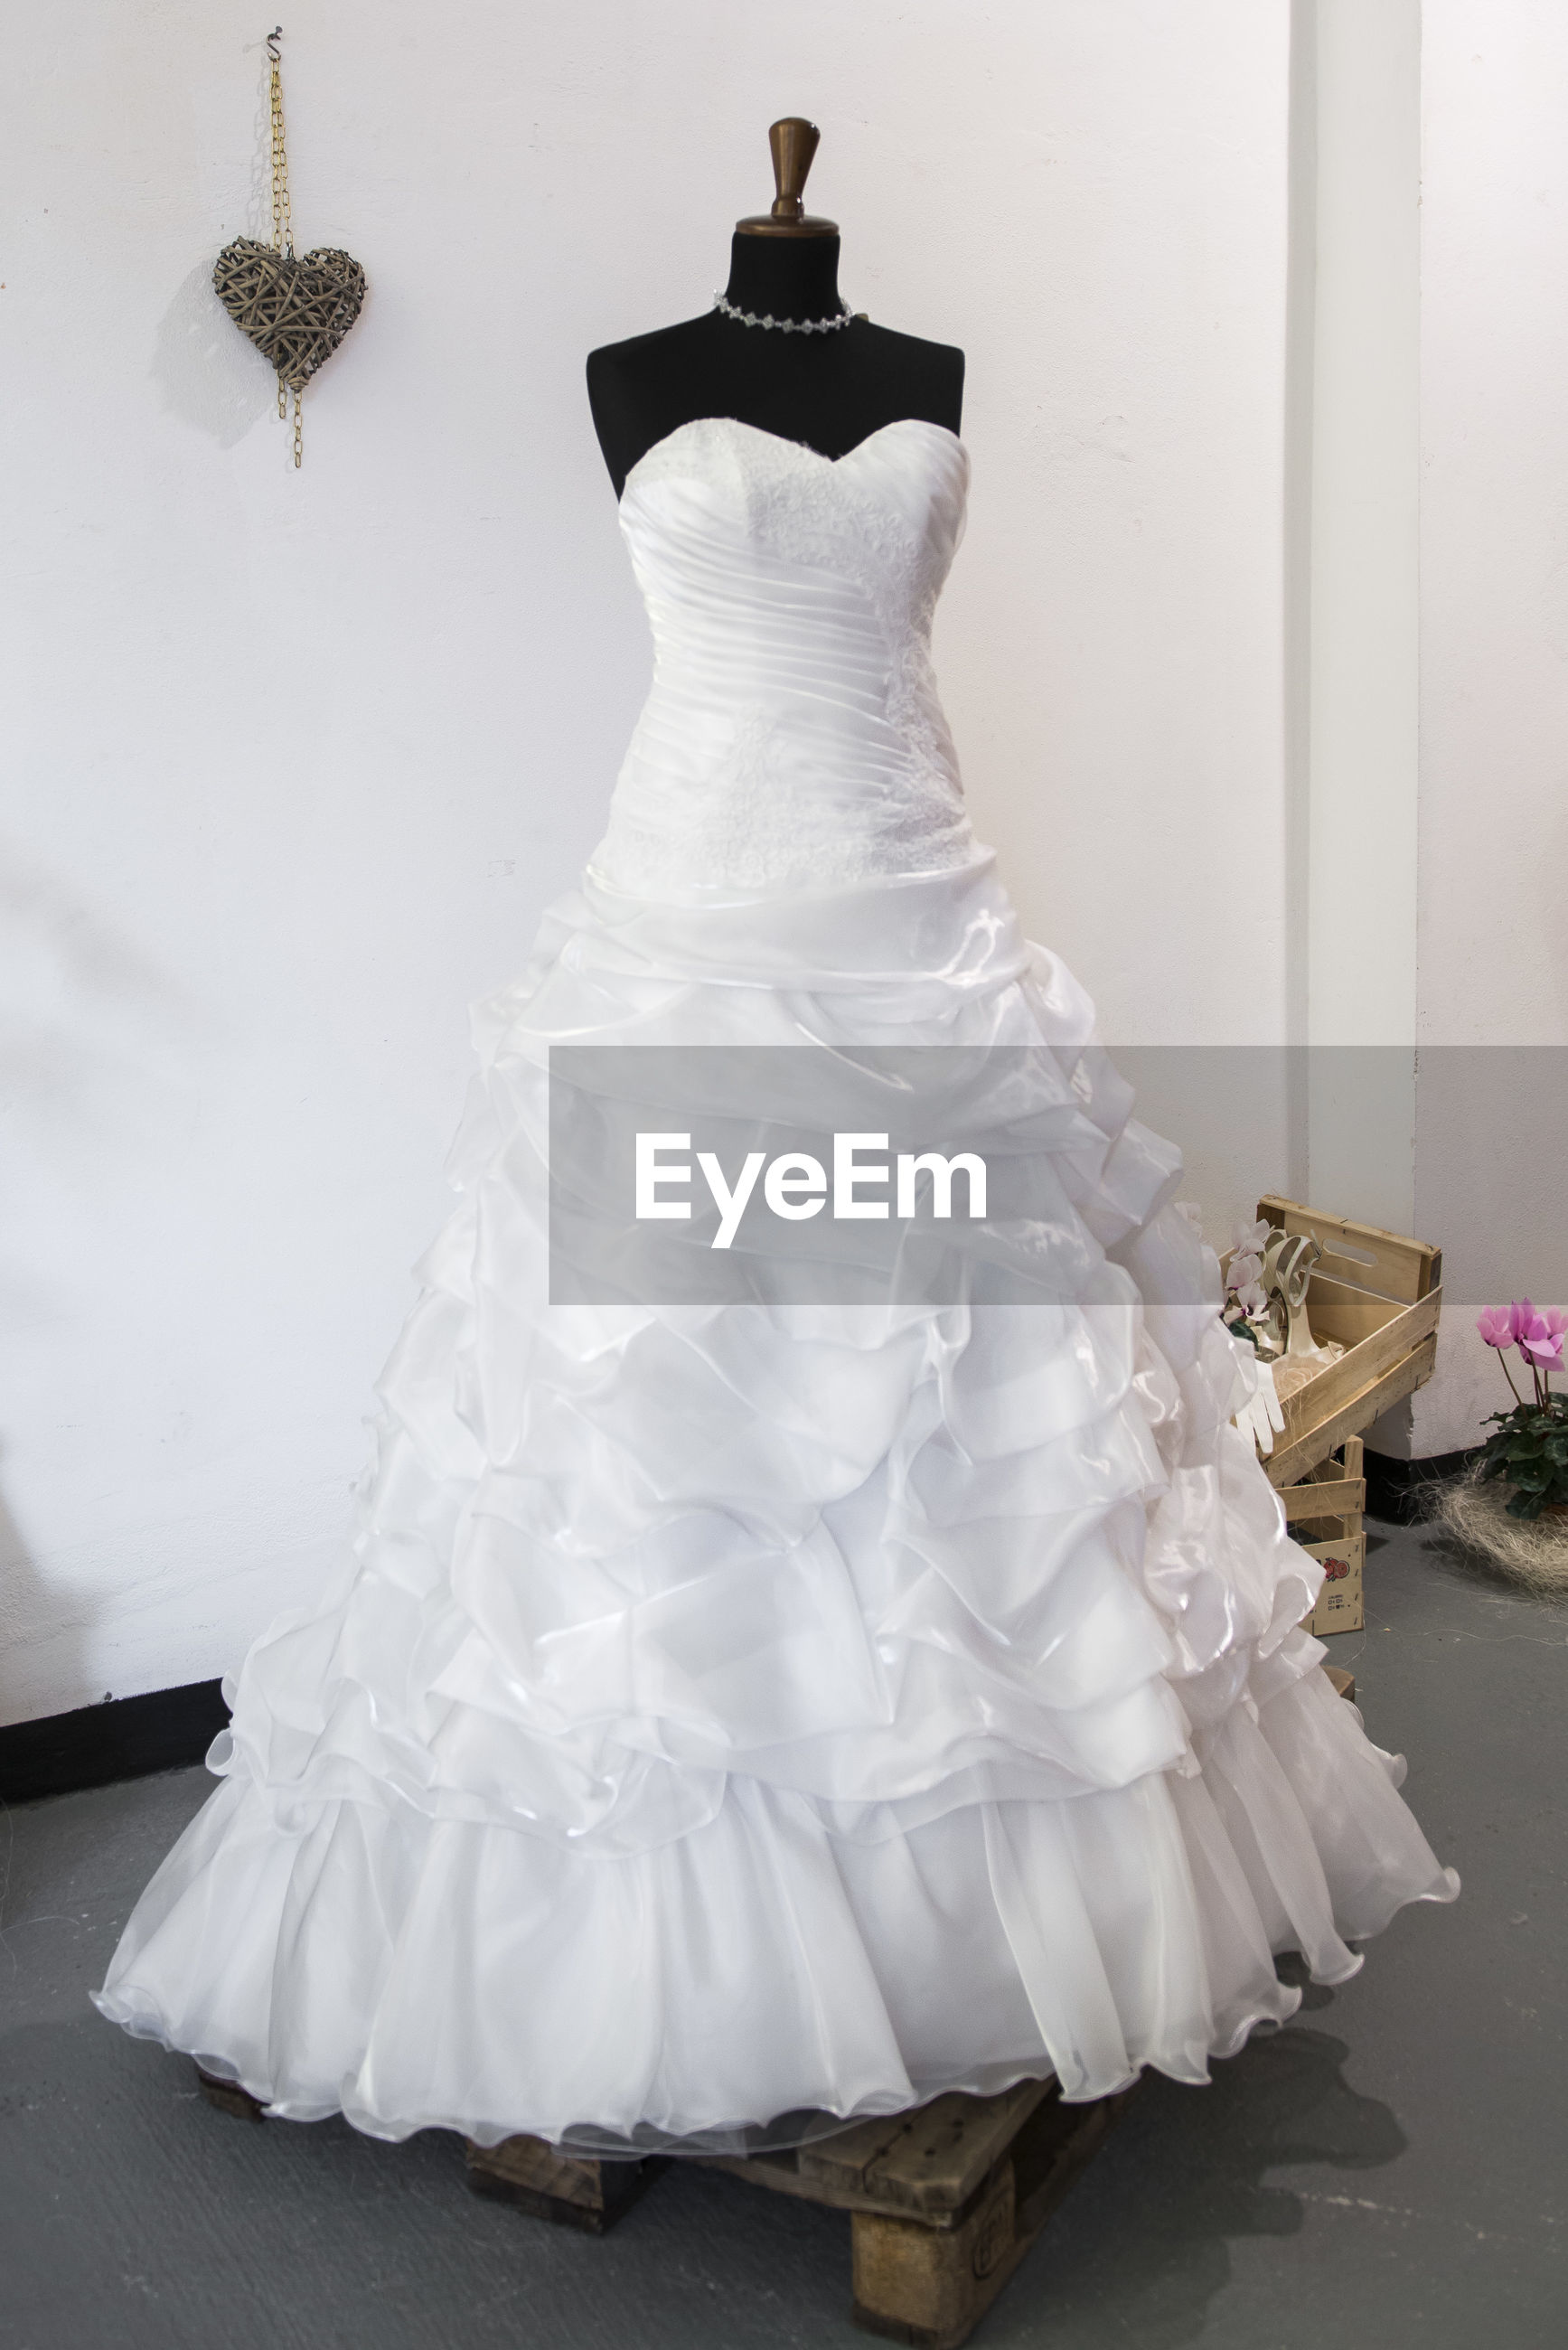 Wedding dress on mannequin in store